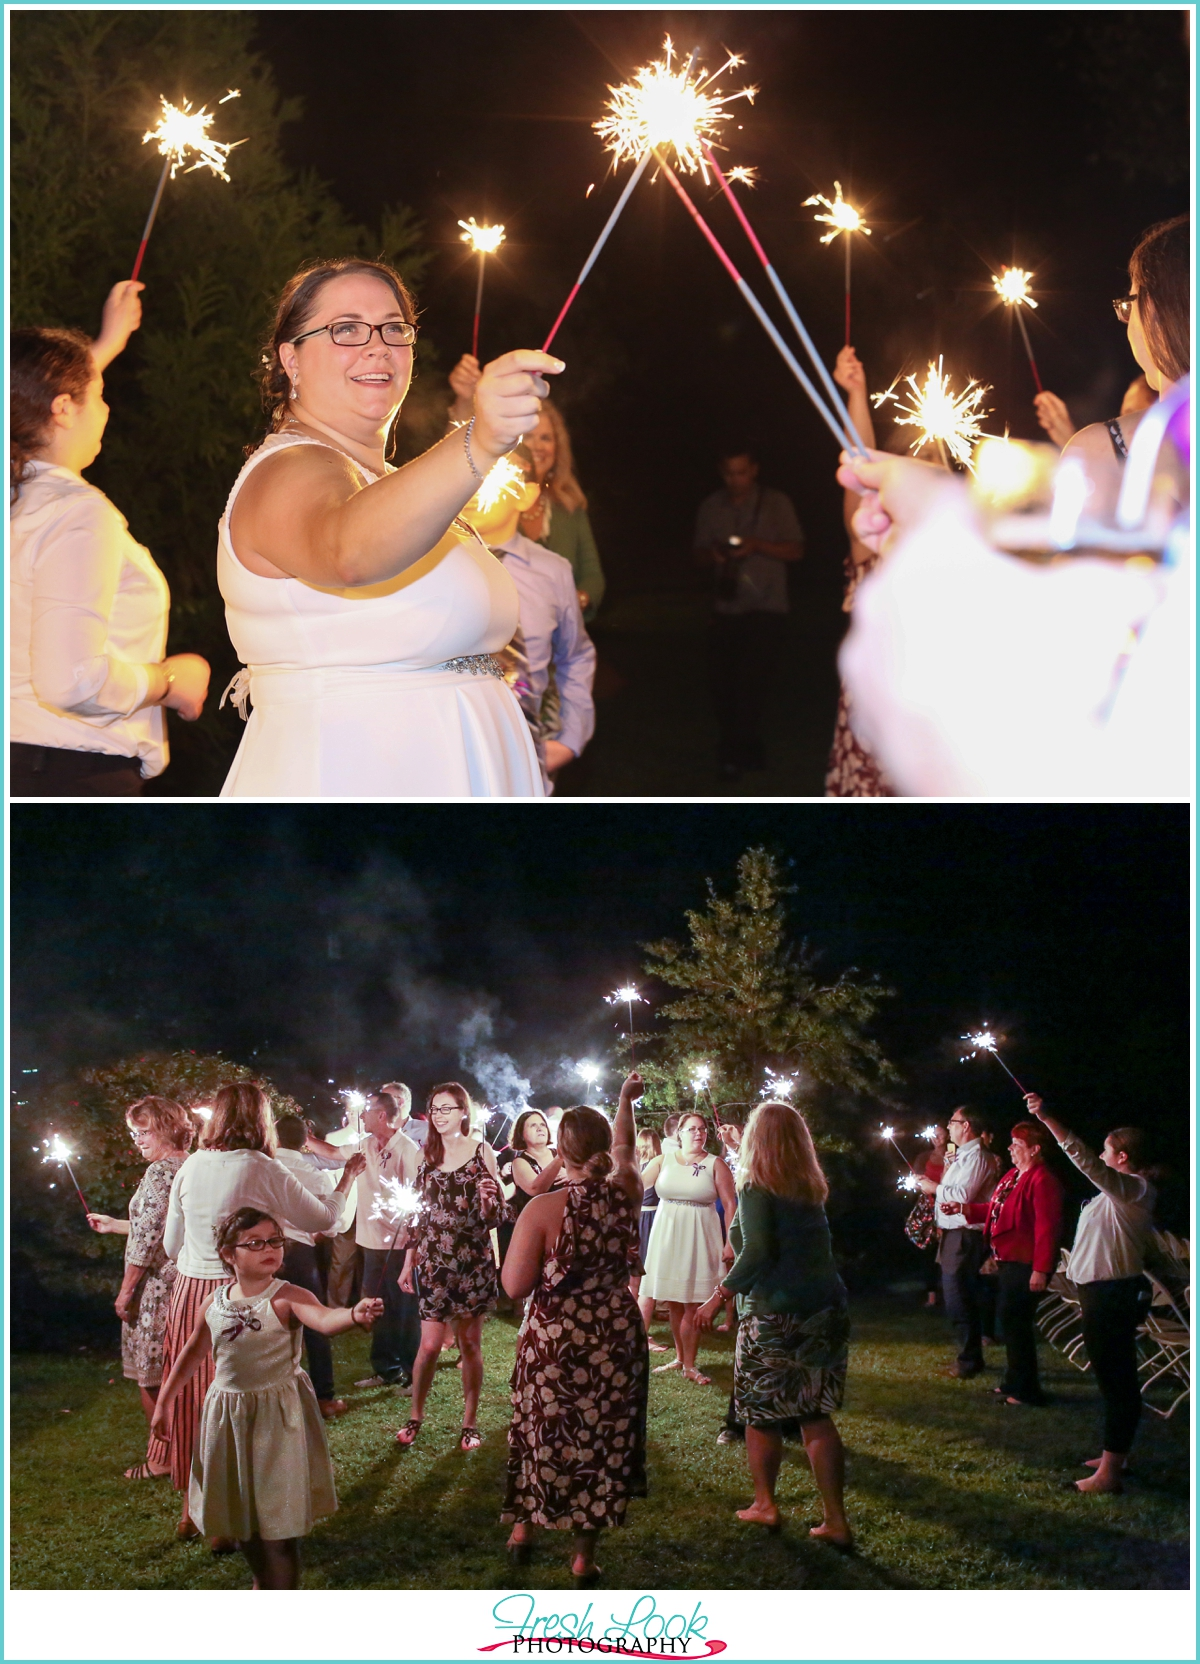 sparkler exit at the wedding